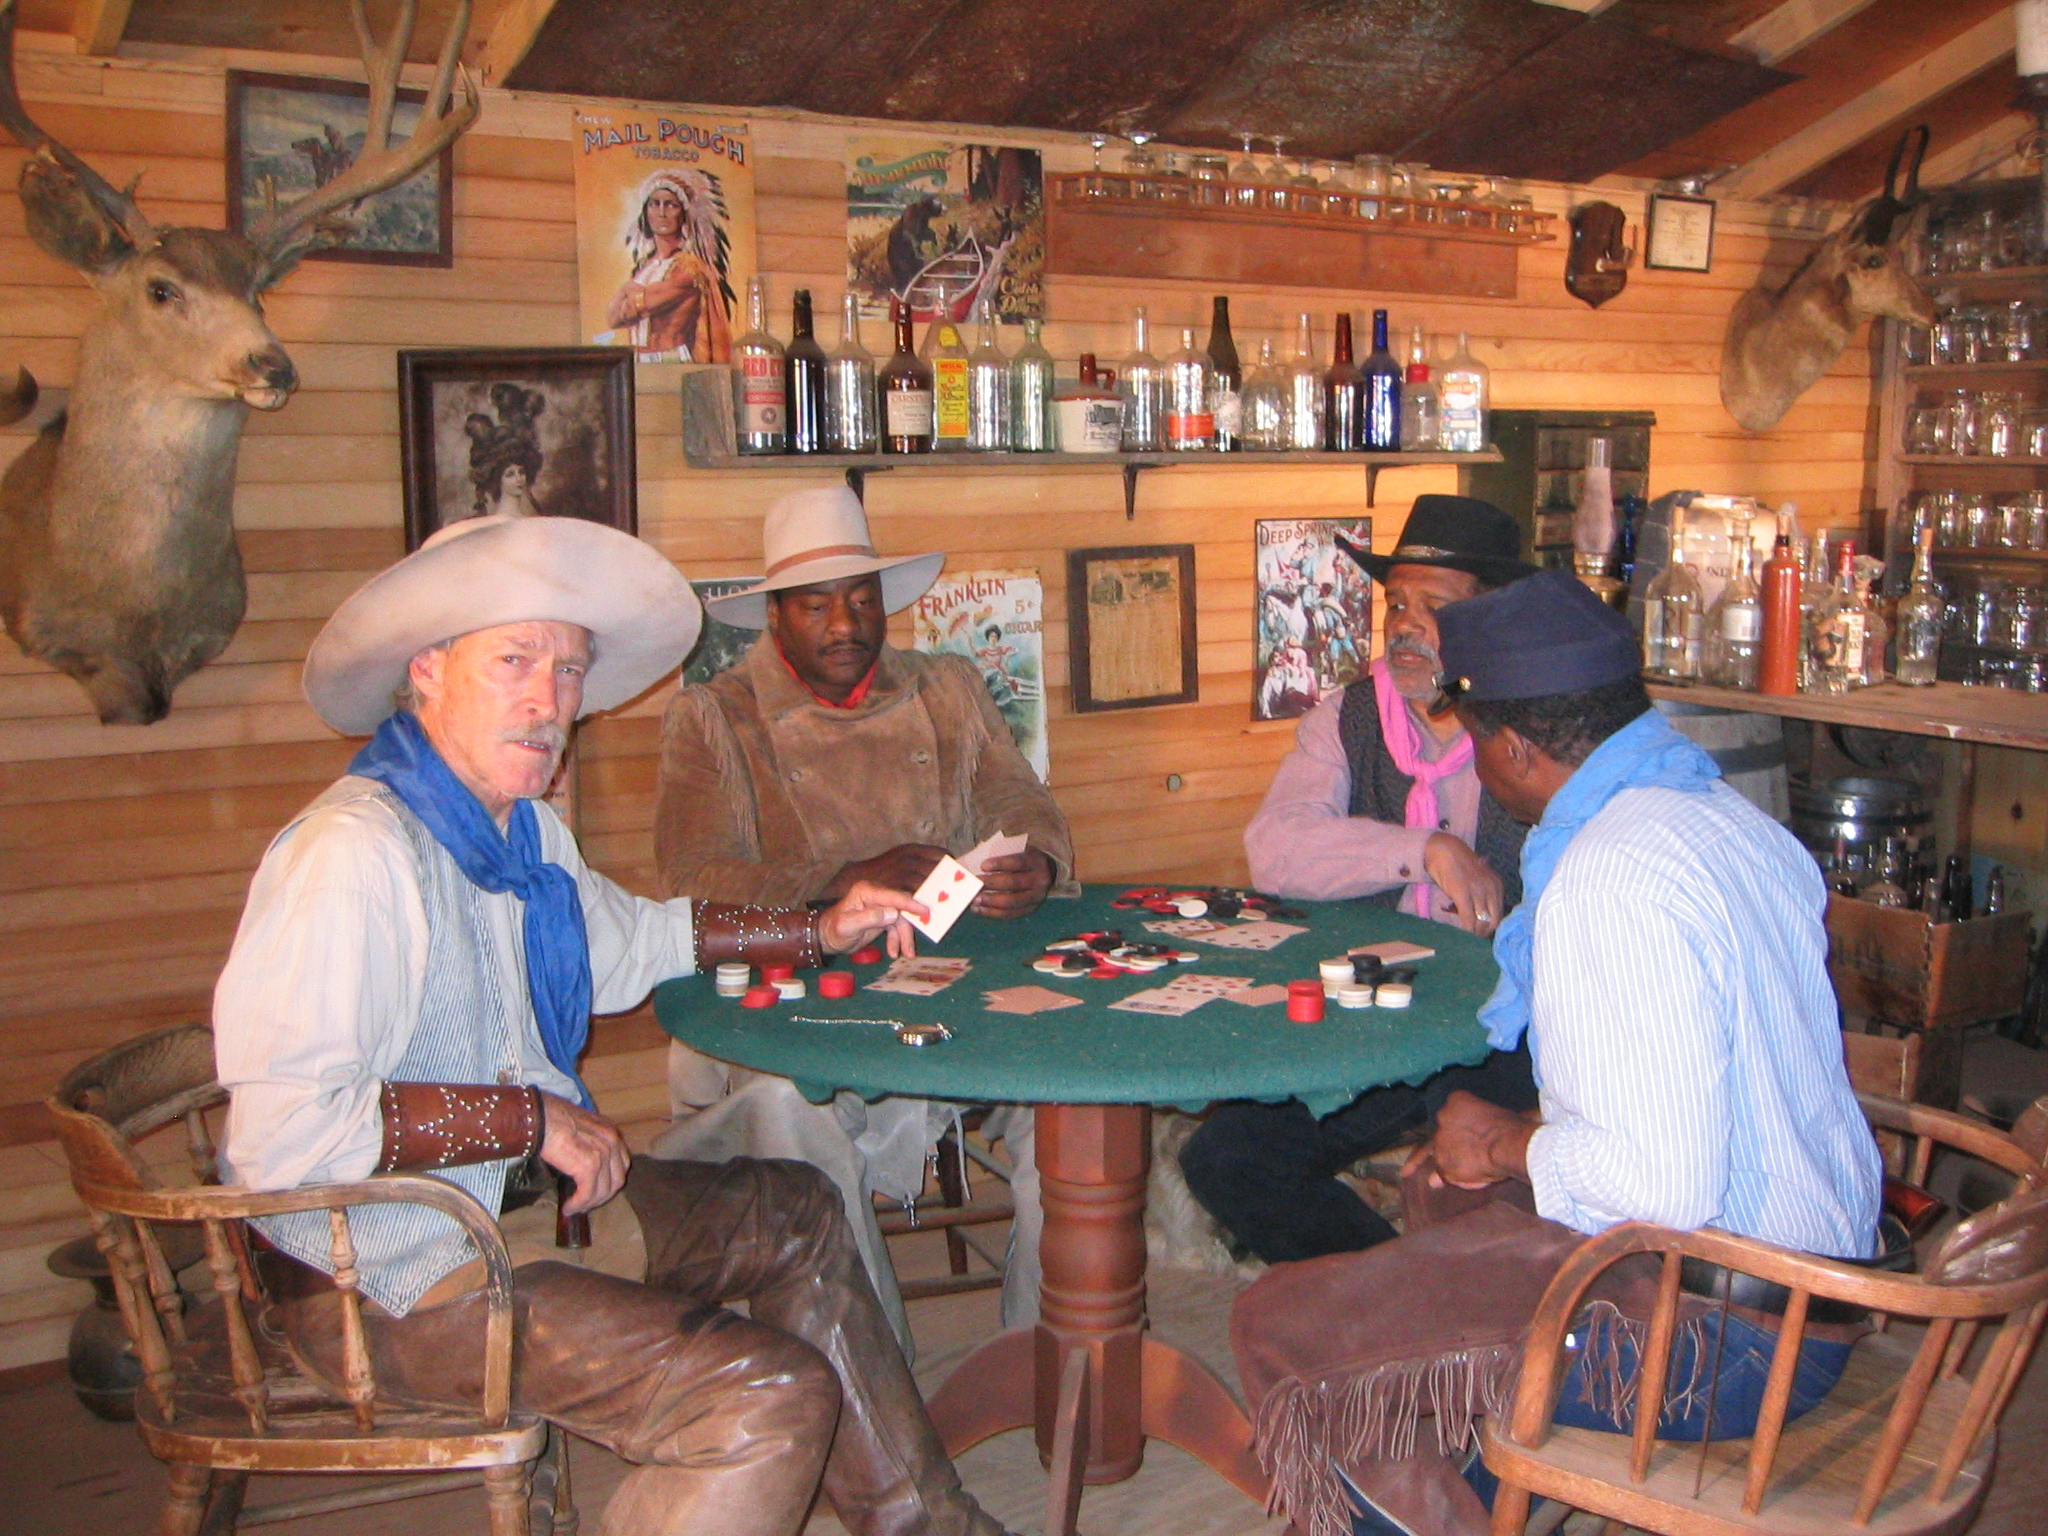 Adam Clark, Patrick Gorman, Ted Lange, and Harrison Page in Players at the Poker Palace (2008)